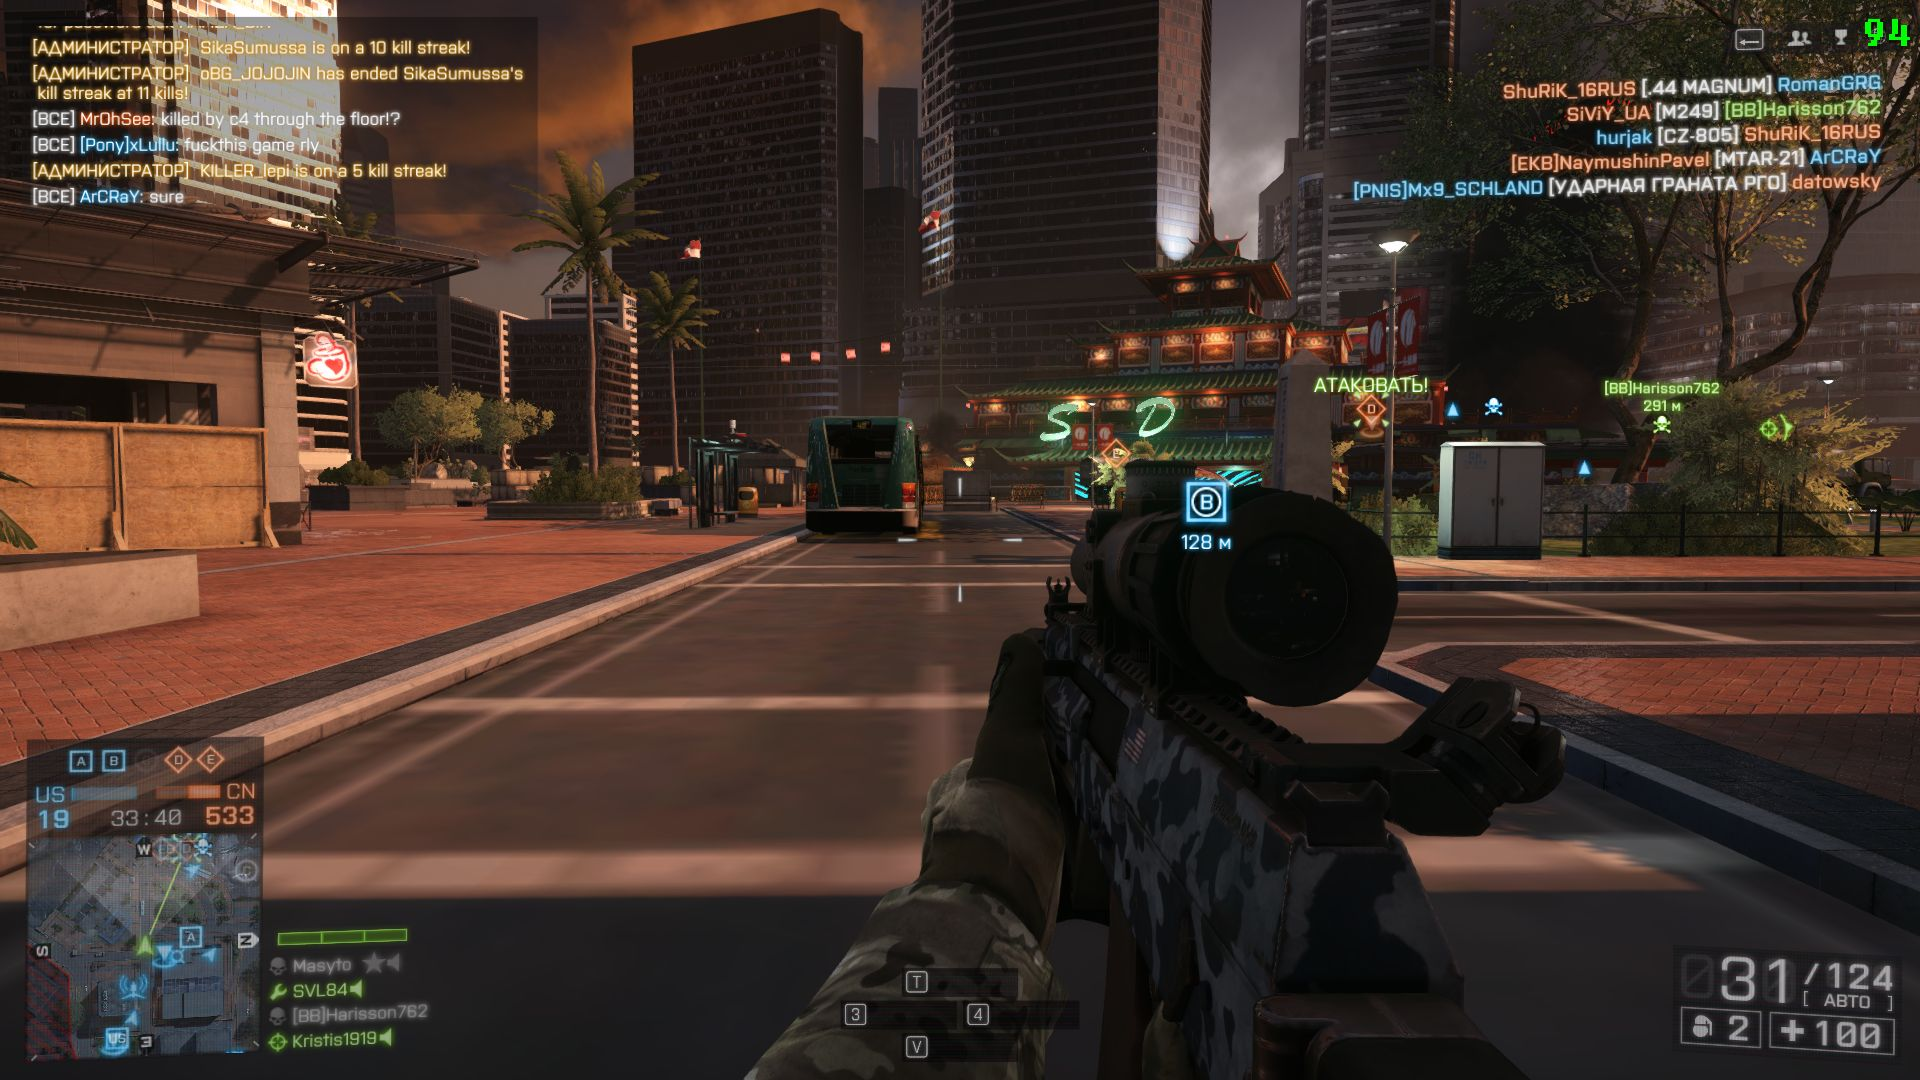 bf4 x86 2014 07 17 21 09 58 655